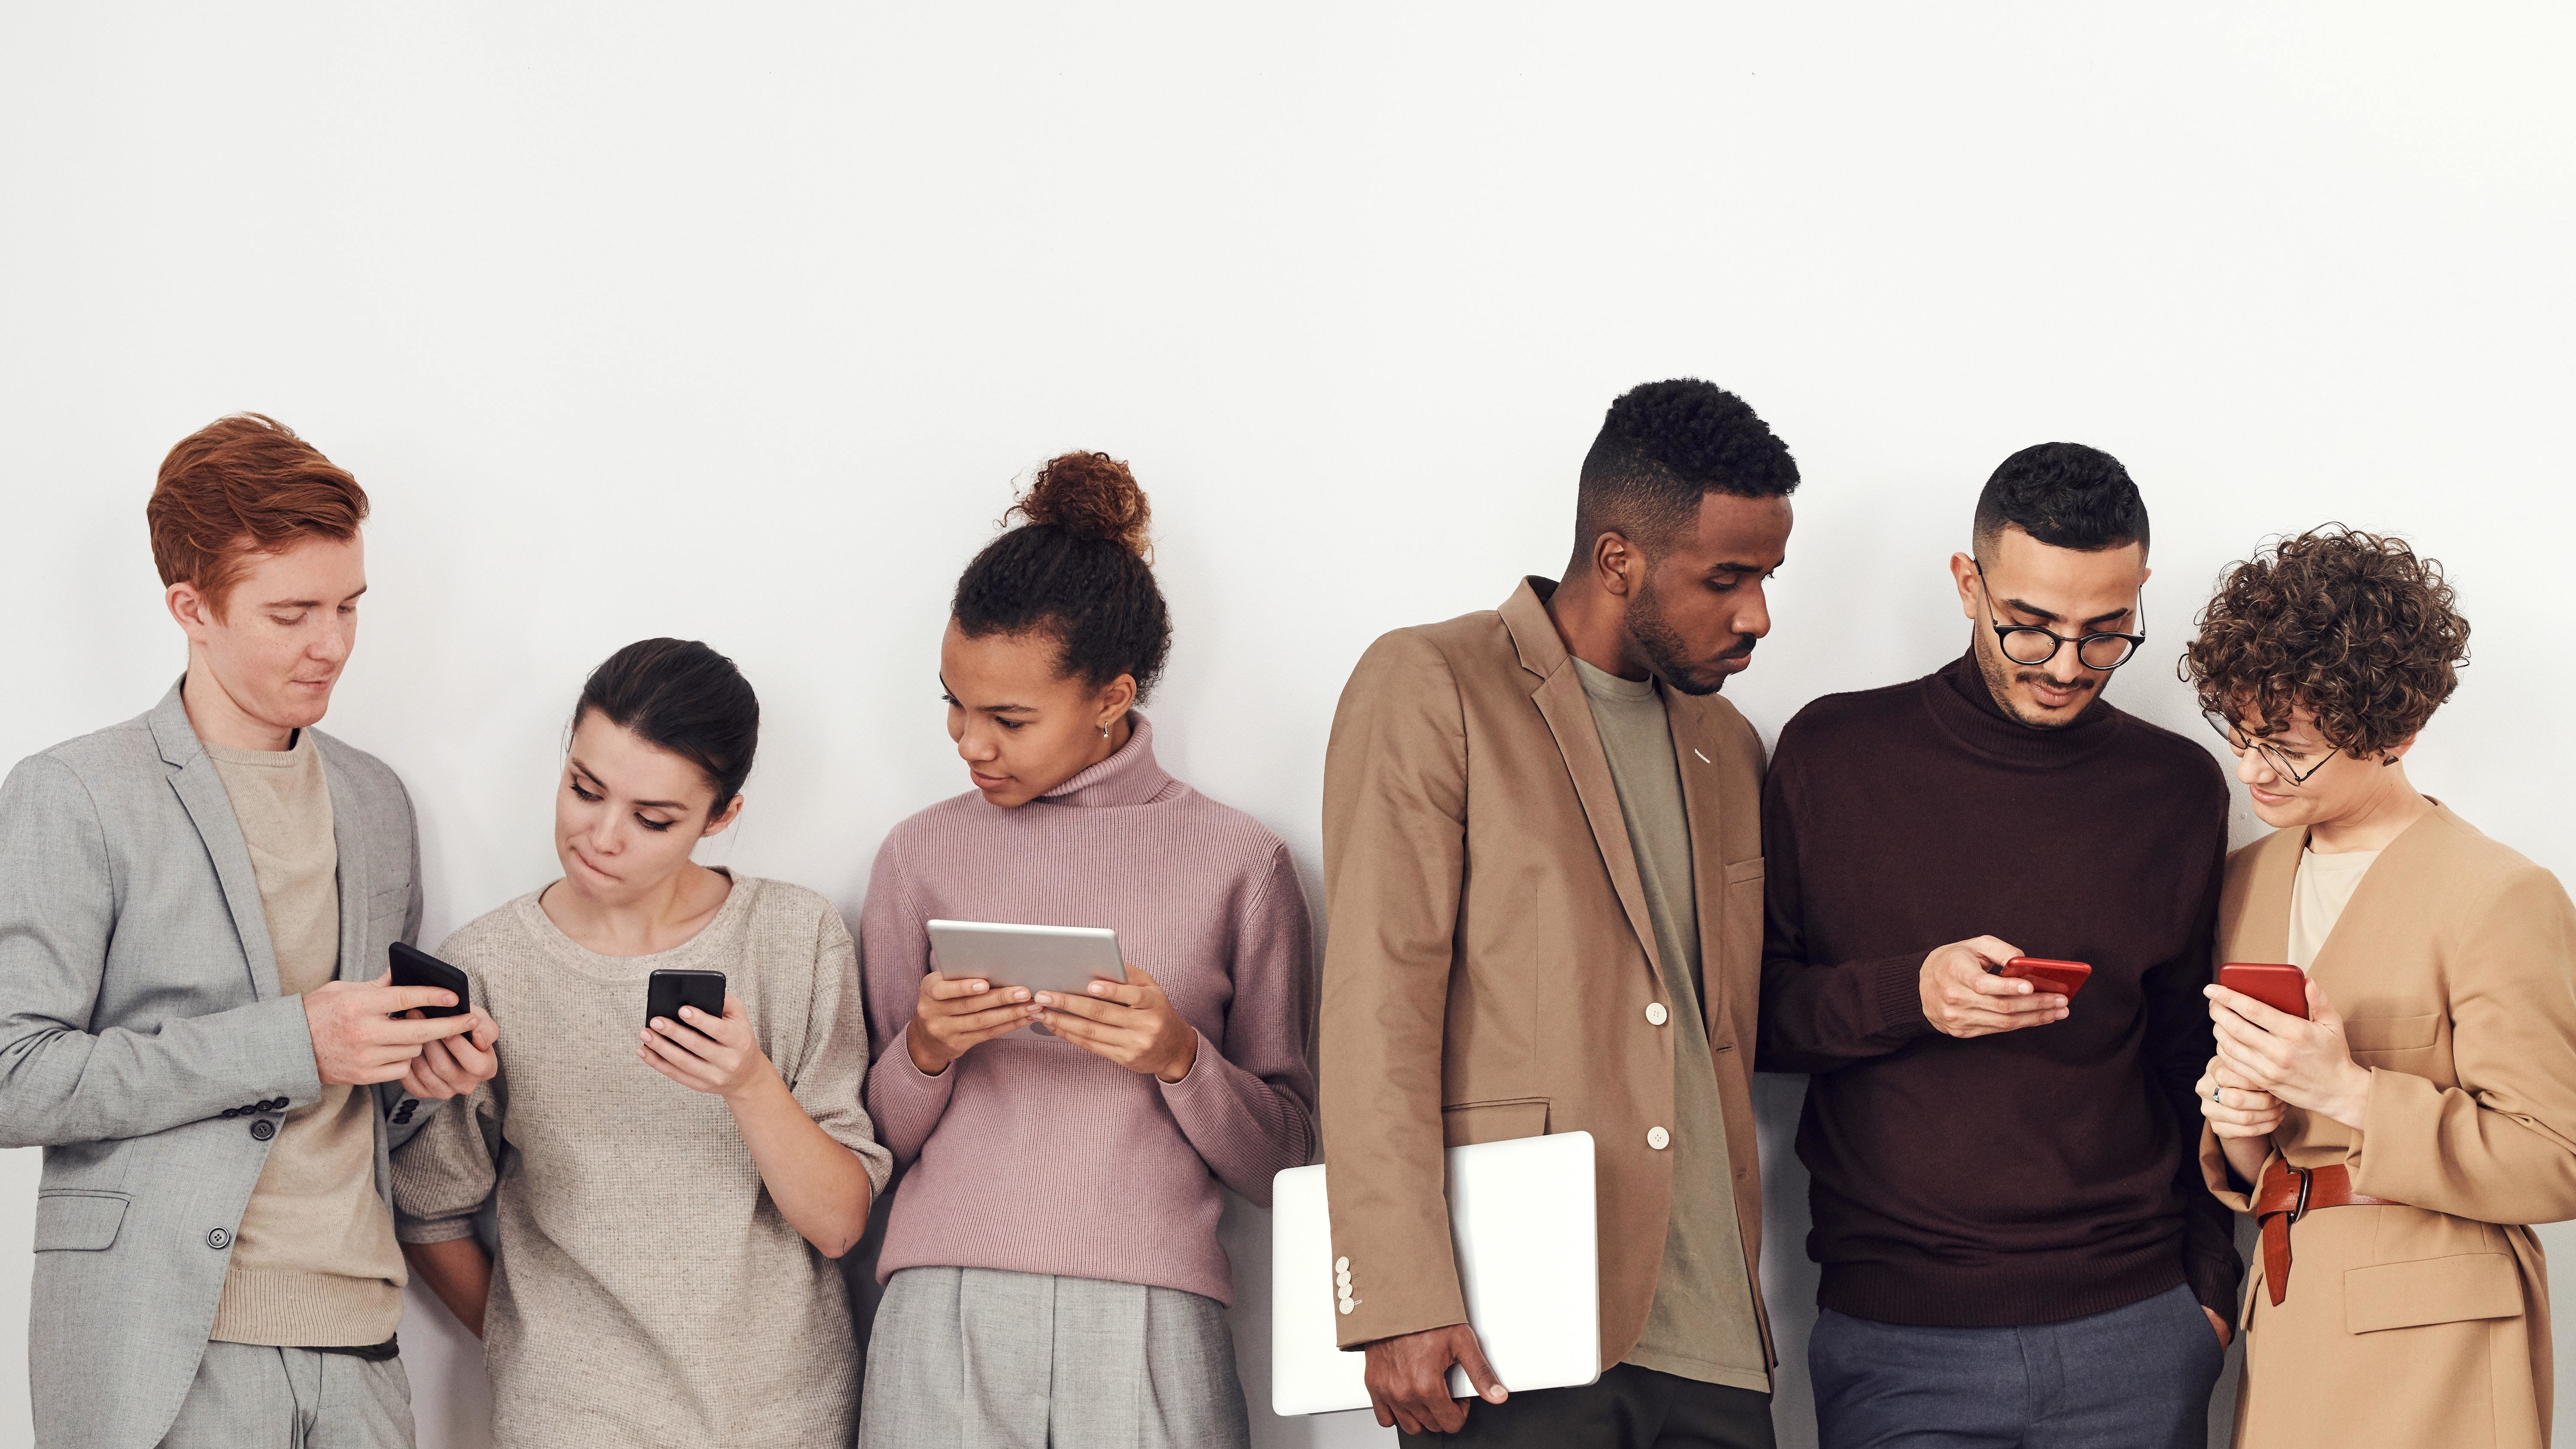 Group of people looking at their mobile phones.